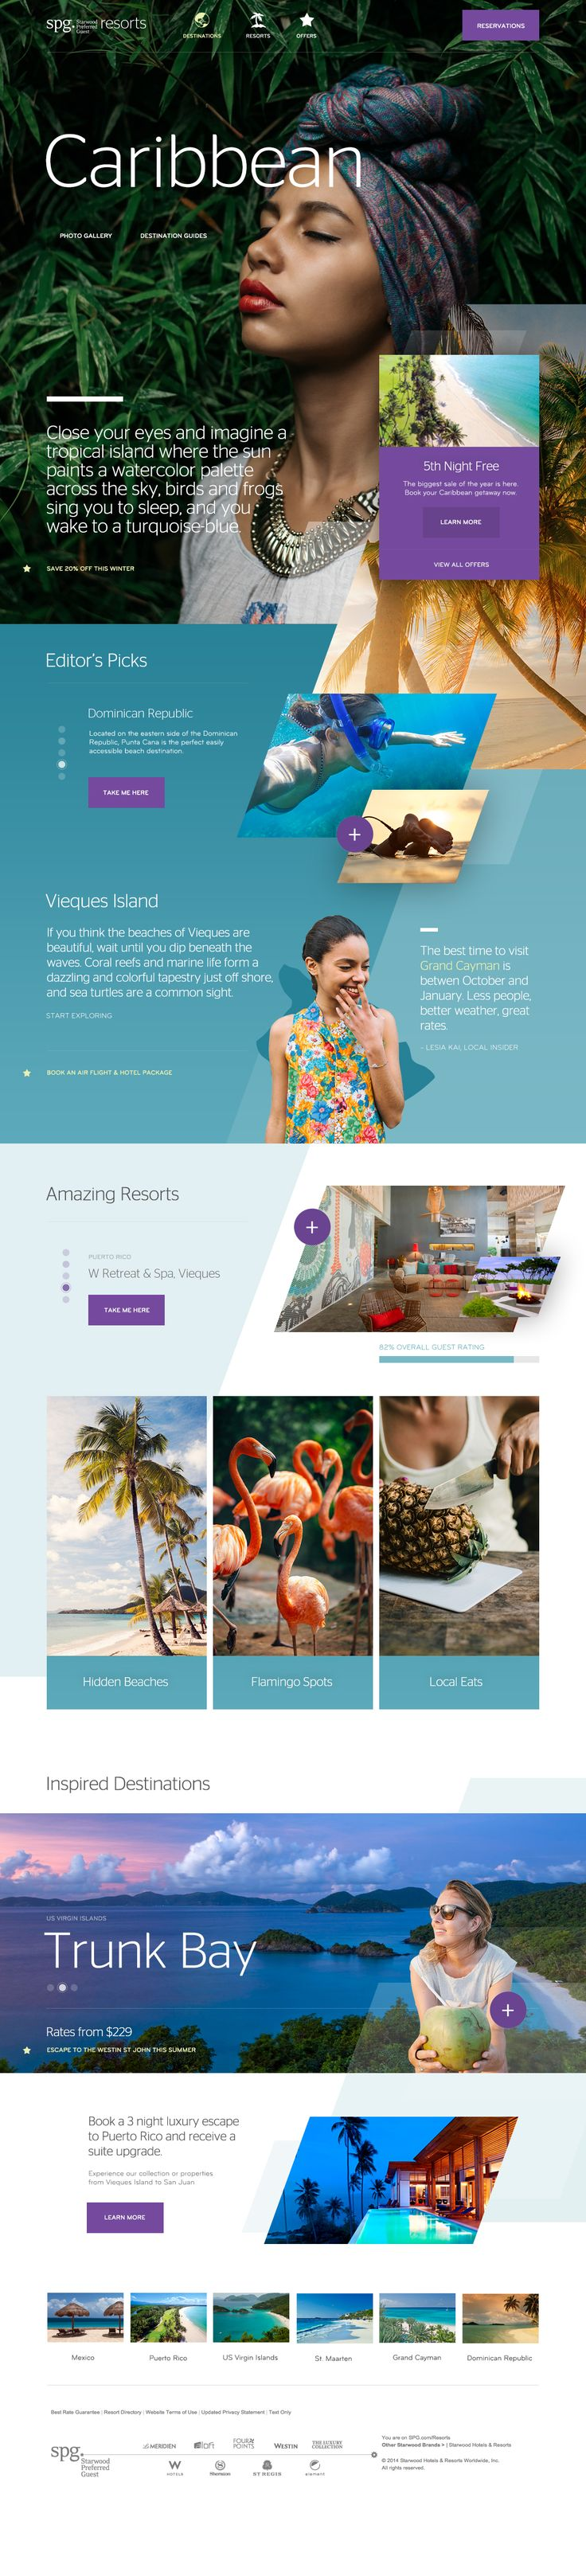 Starwood Hotels & Resorts Caribbean Destination Website Design by Agency Dominion